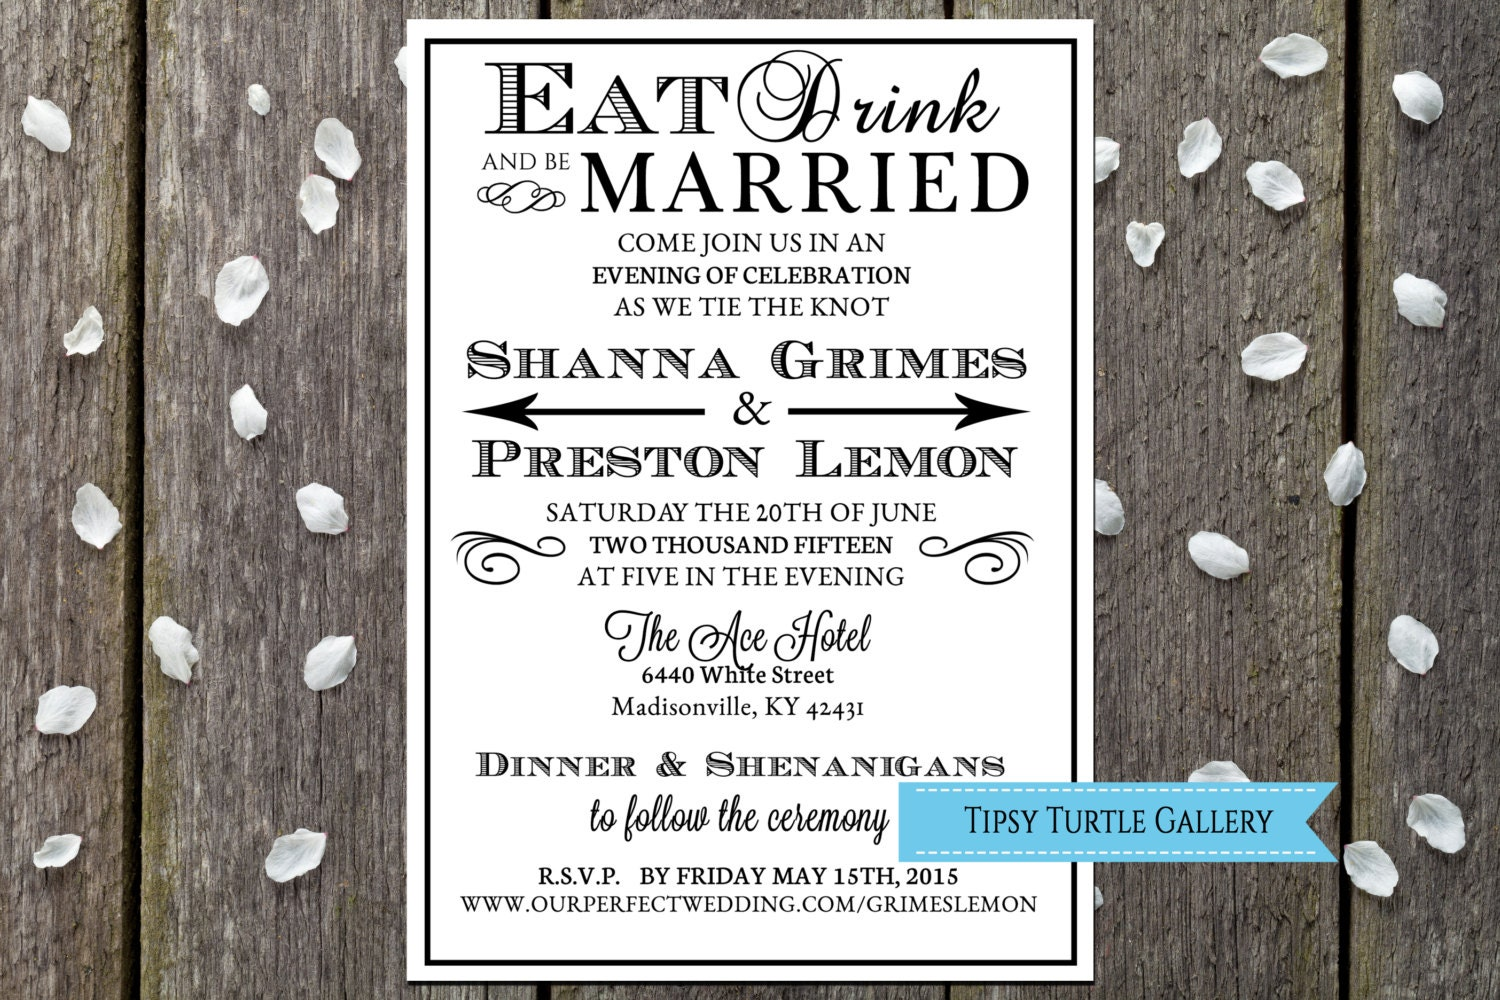 Printable Wedding Invitations, Eat Drink And Be Married, Bridal Shower  Invitations, Wedding Invitations, DIY Wedding Invitations